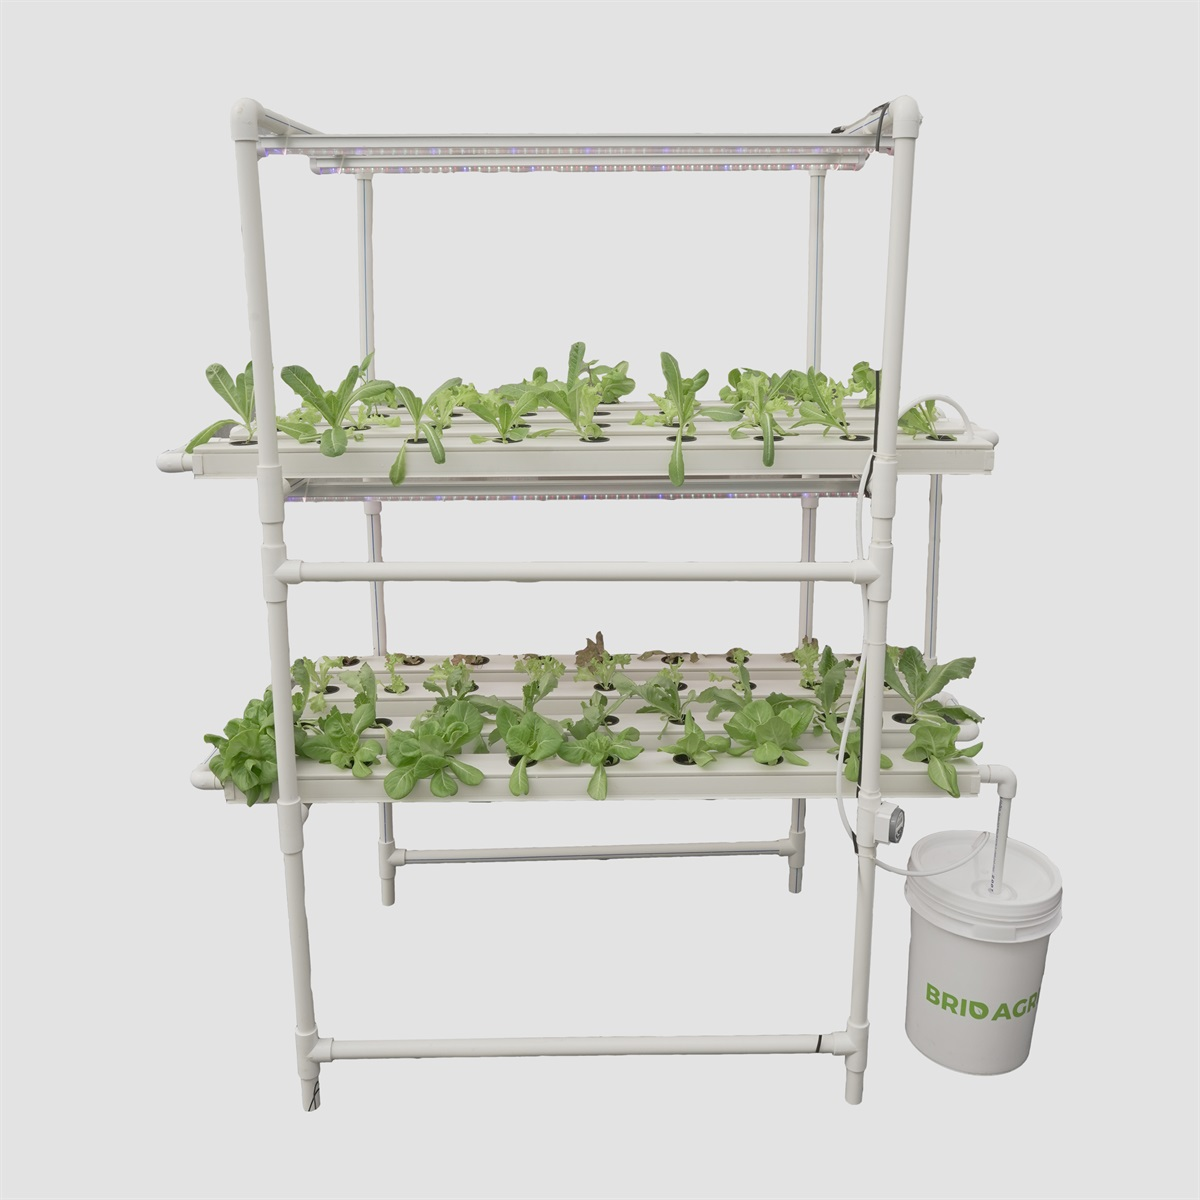 Agrimiracle DUO Hydroponics Grower's Kit (72 Planter NFT)